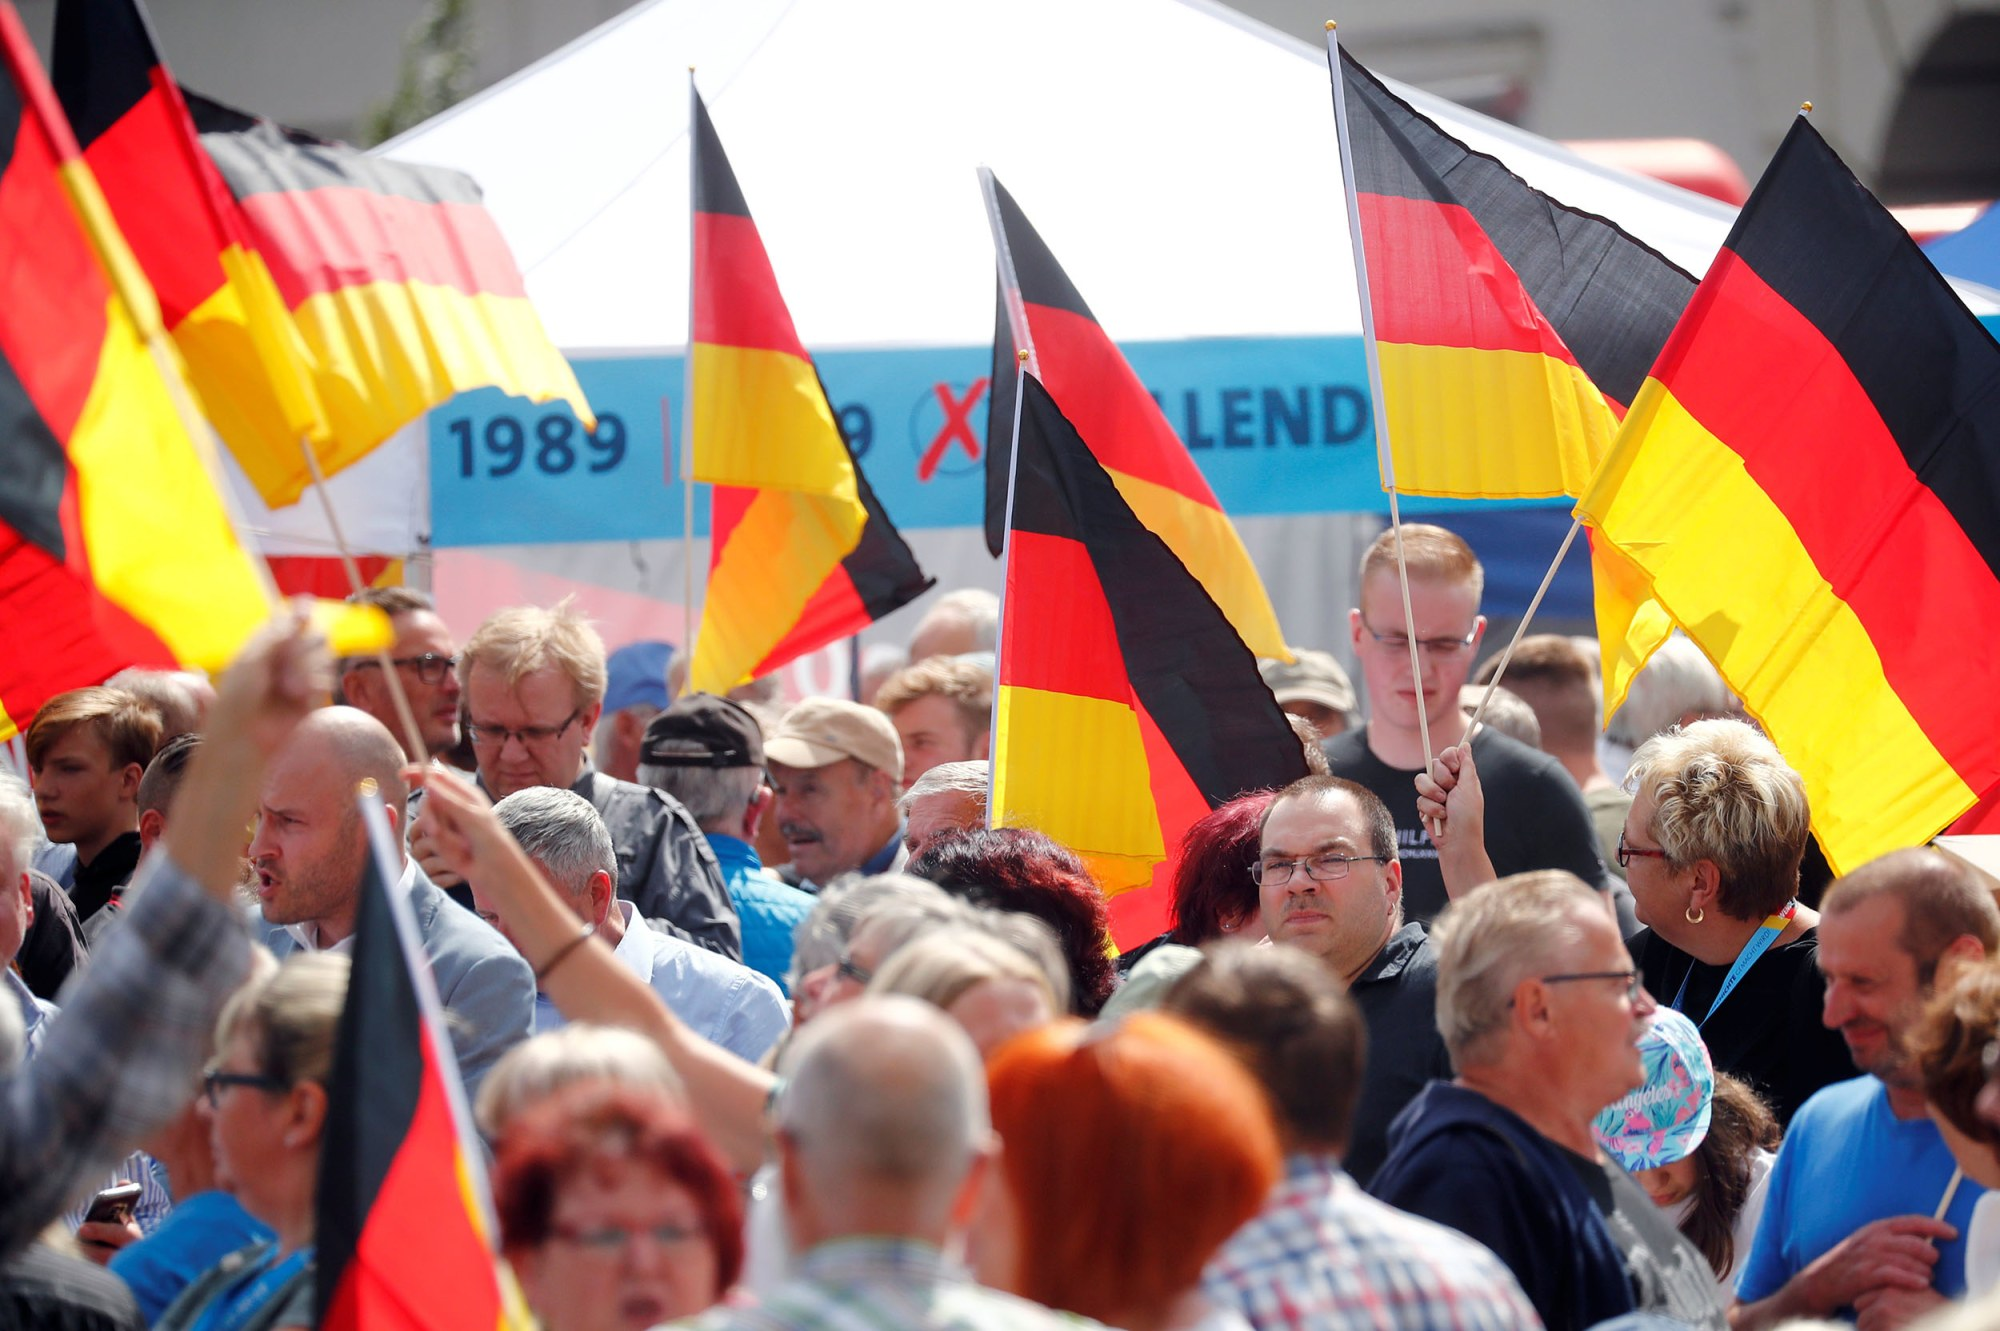 Image: People attend an election campaign event by Germany's far-right Alternative for Germany (AfD) party in Cottbus,